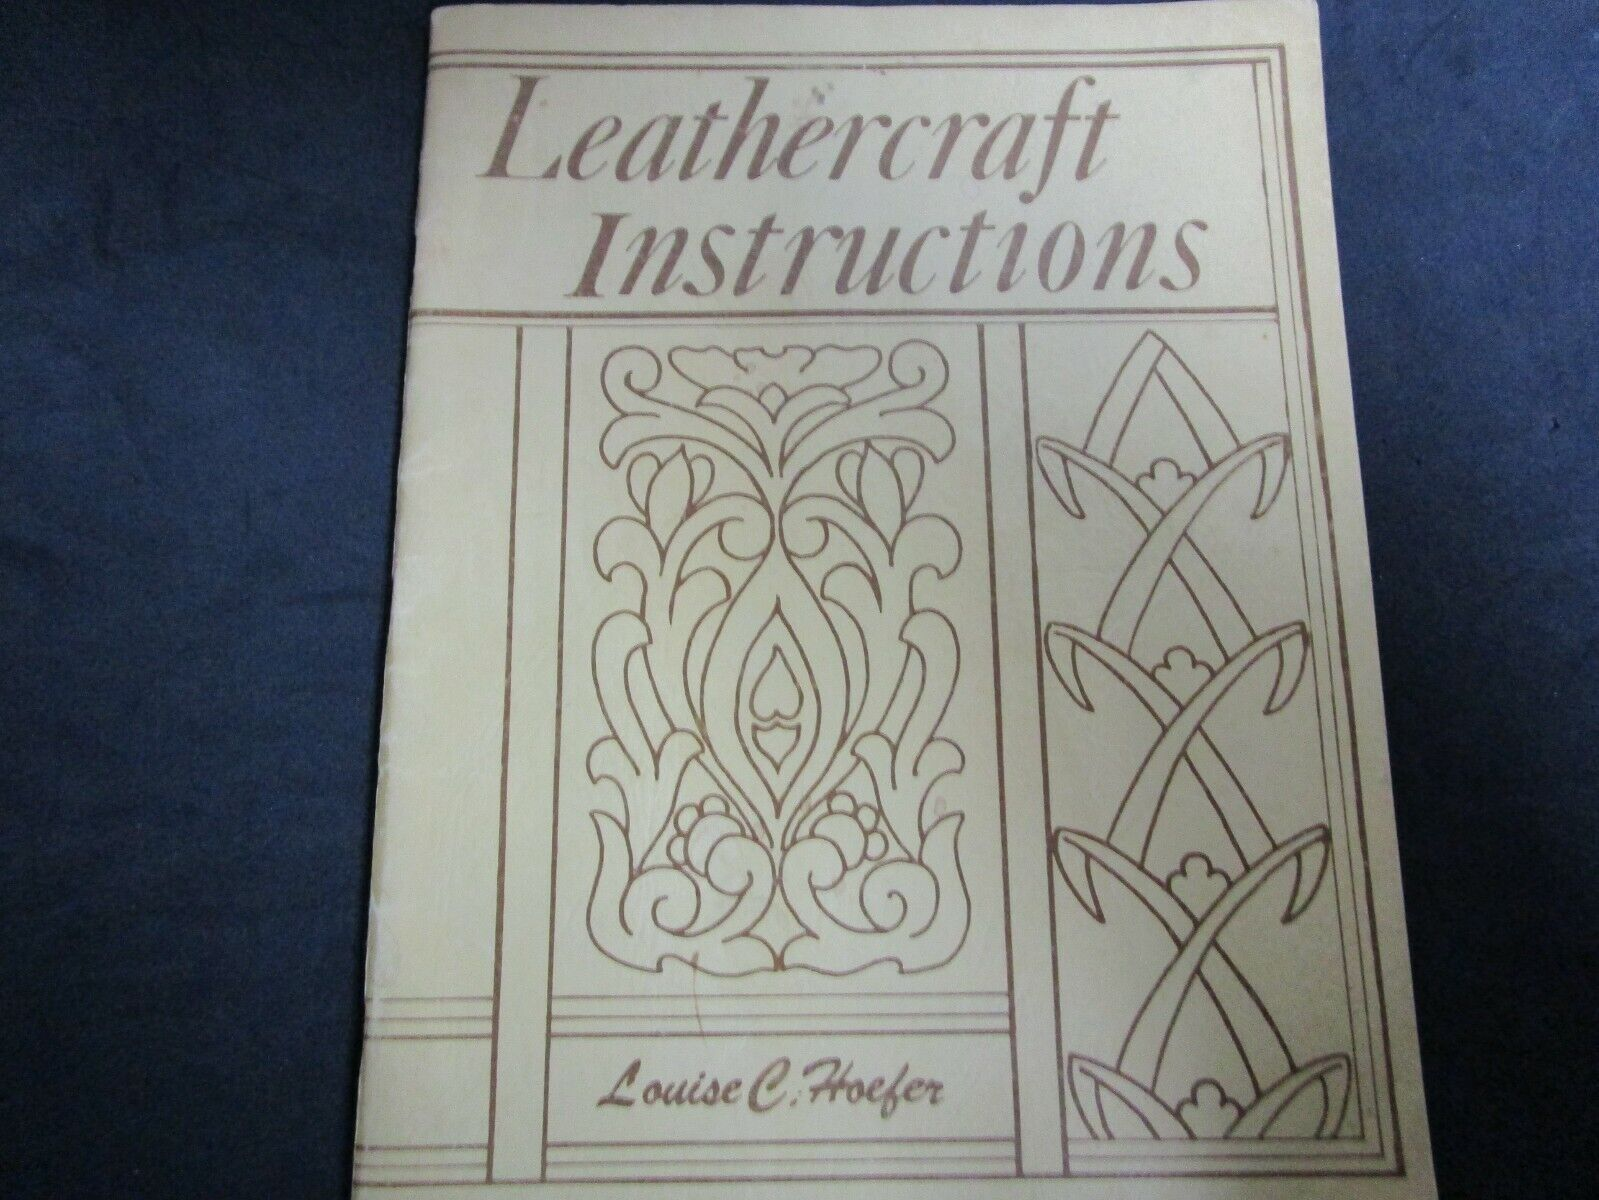 Vintage Leather Book-Leathercraft Instructions By Louise Hoeffer. Dated 1946. - $14.99